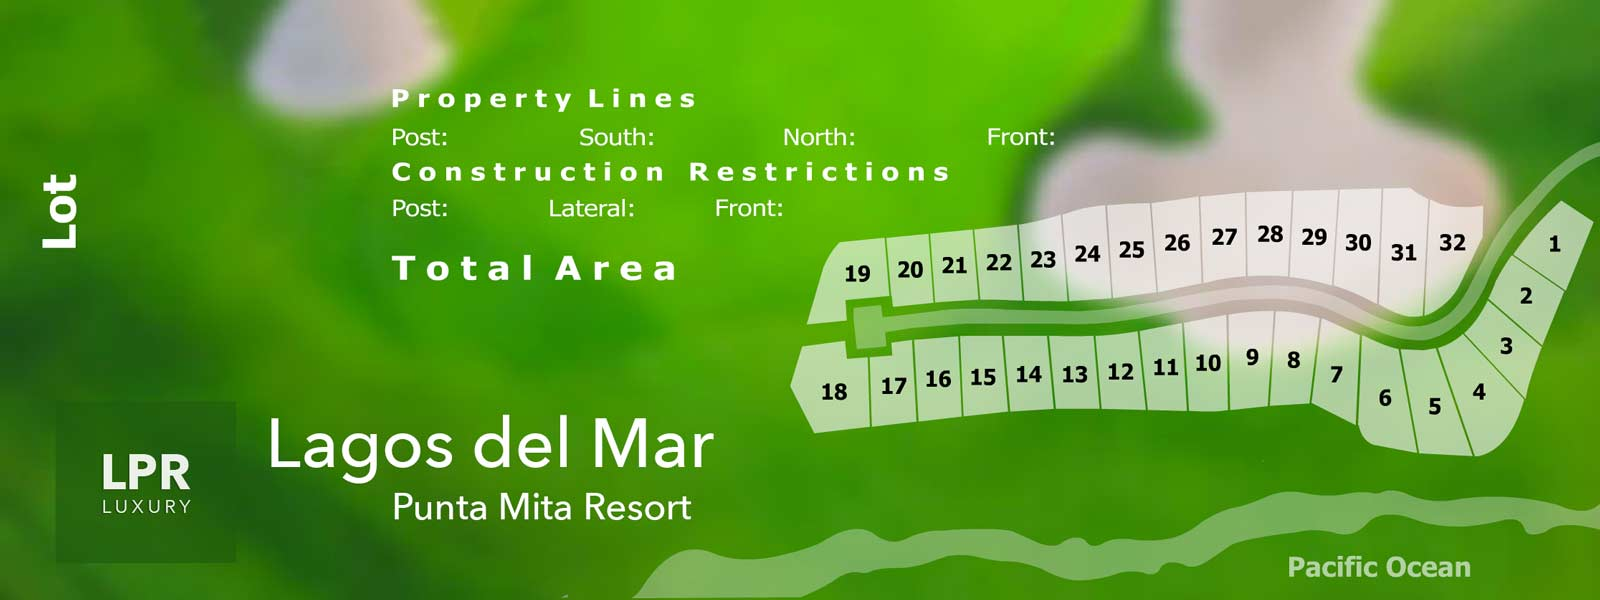 Map of Lagos del Mar - Luxury Punta Mita Resort Real Estate on the Jack Nicklaus golf course